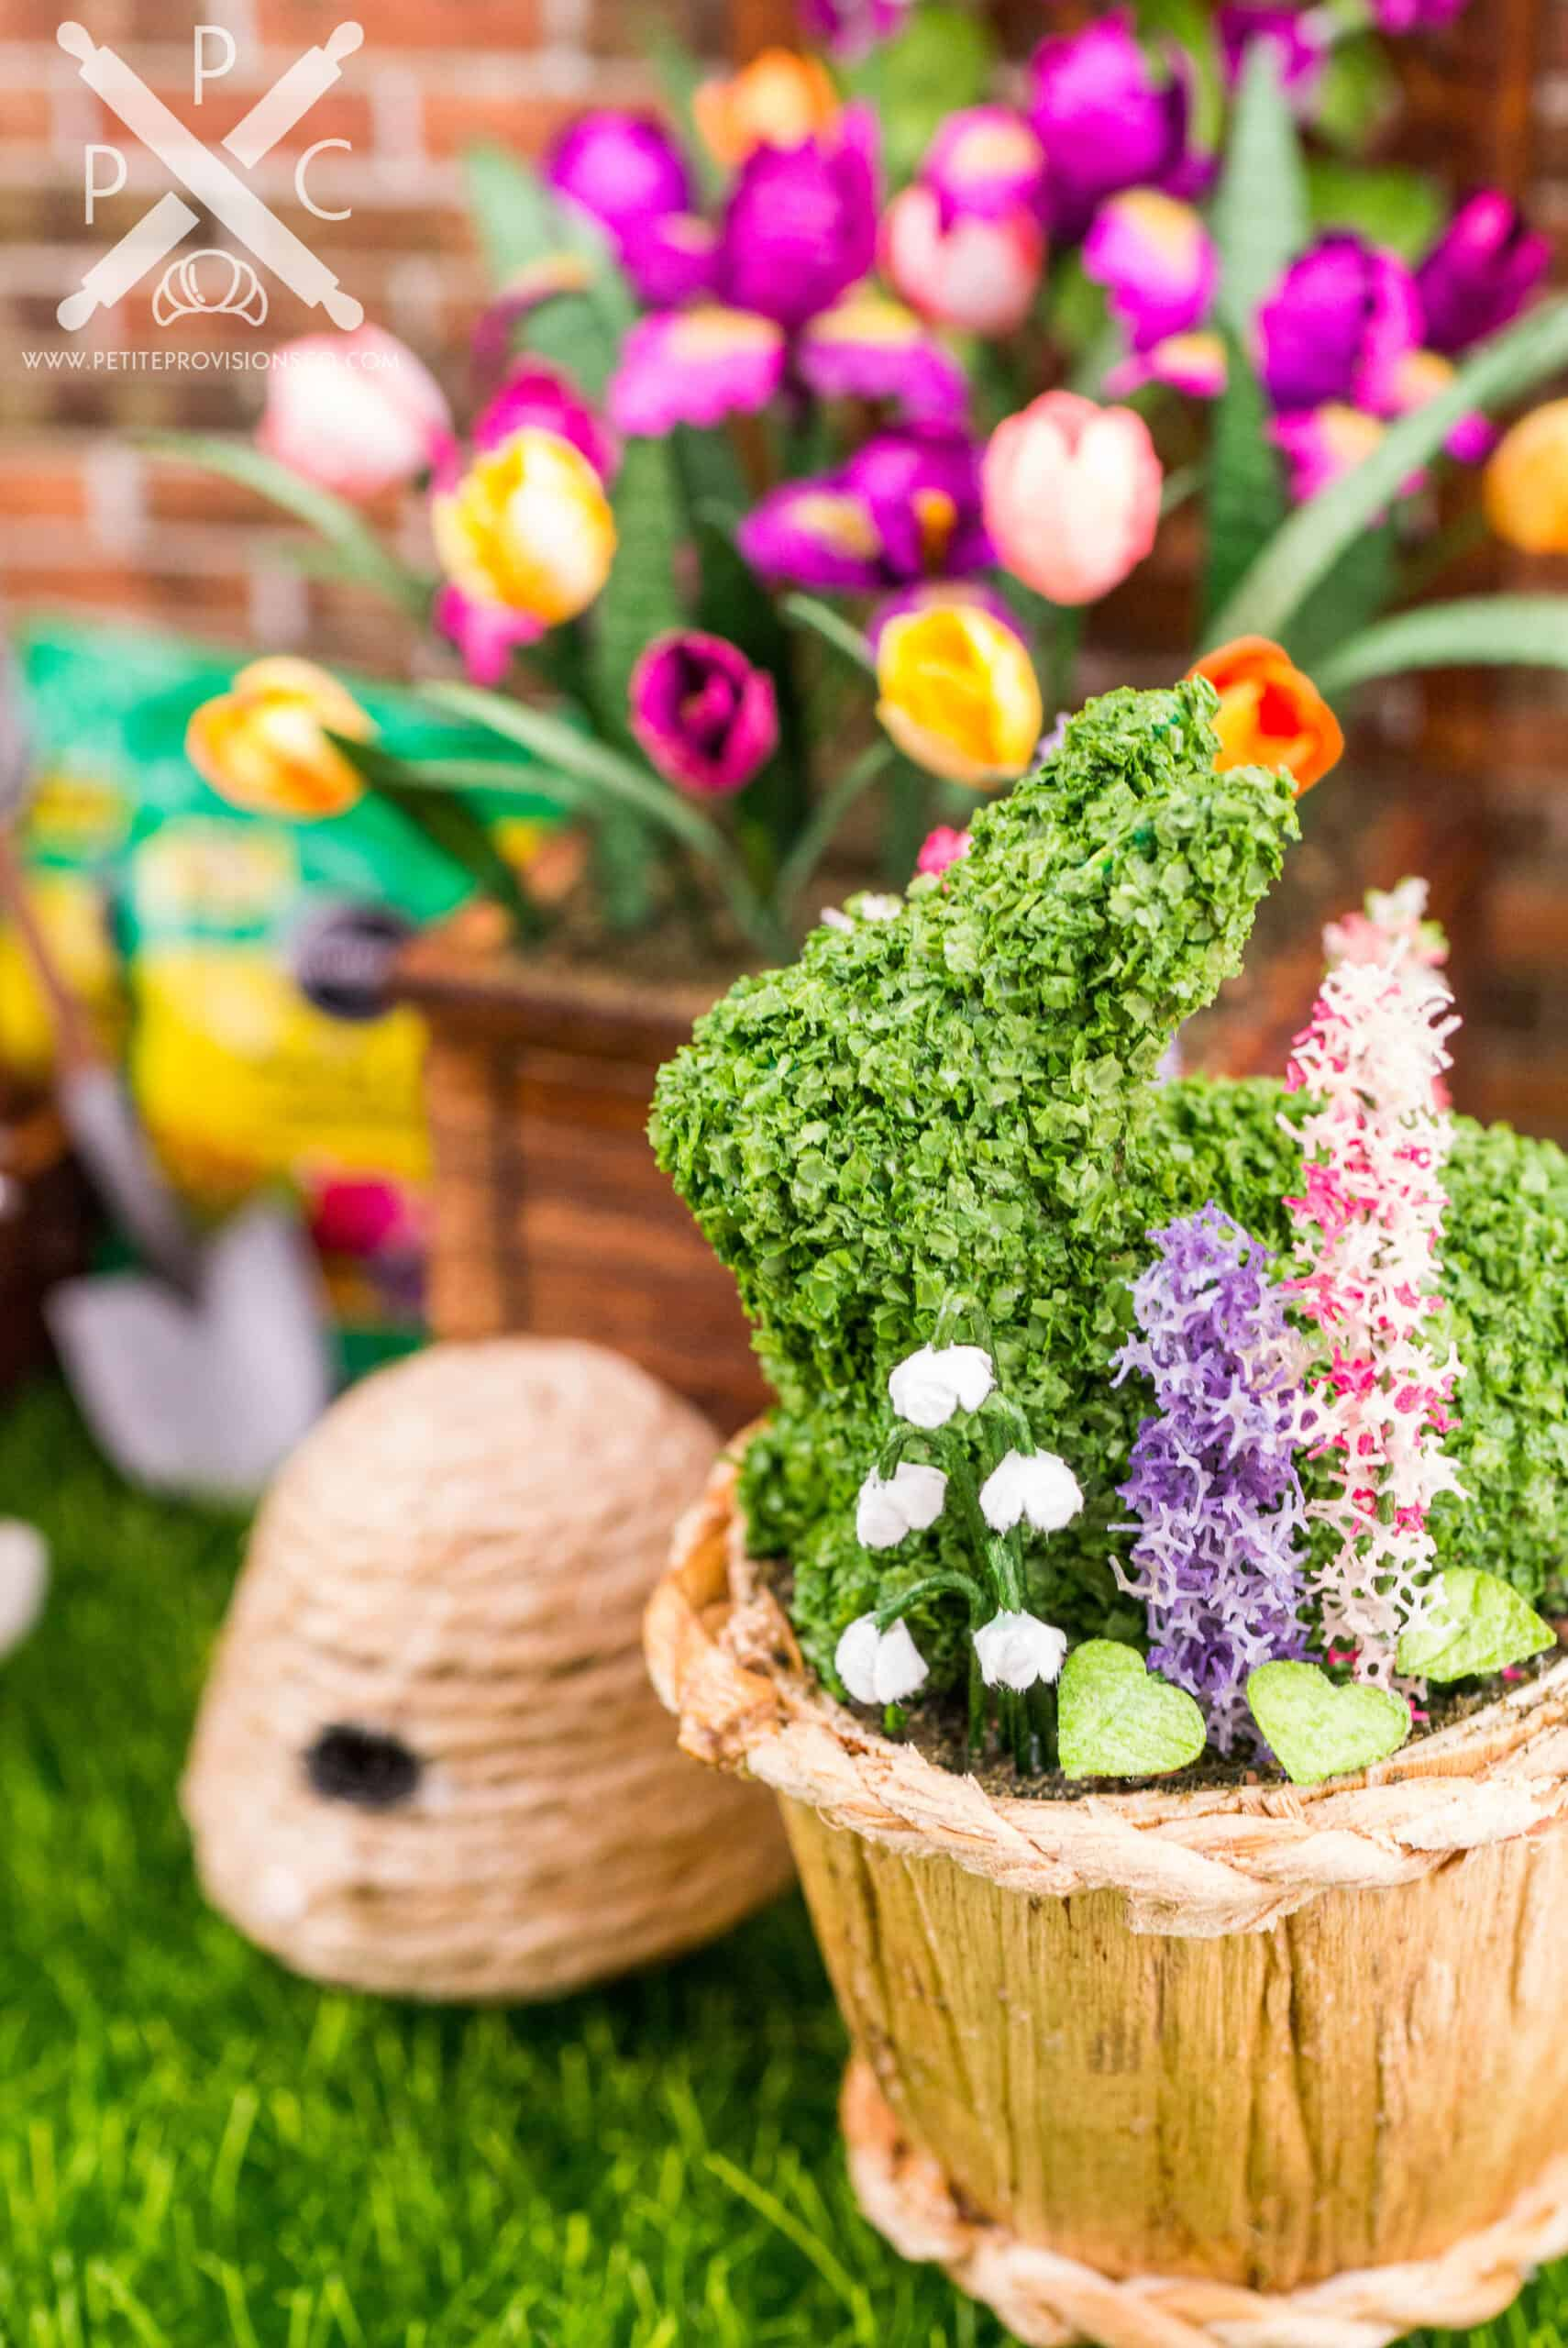 A dollhouse miniature bunny topiary in a planter with flowers by The Petite Provisions Co.